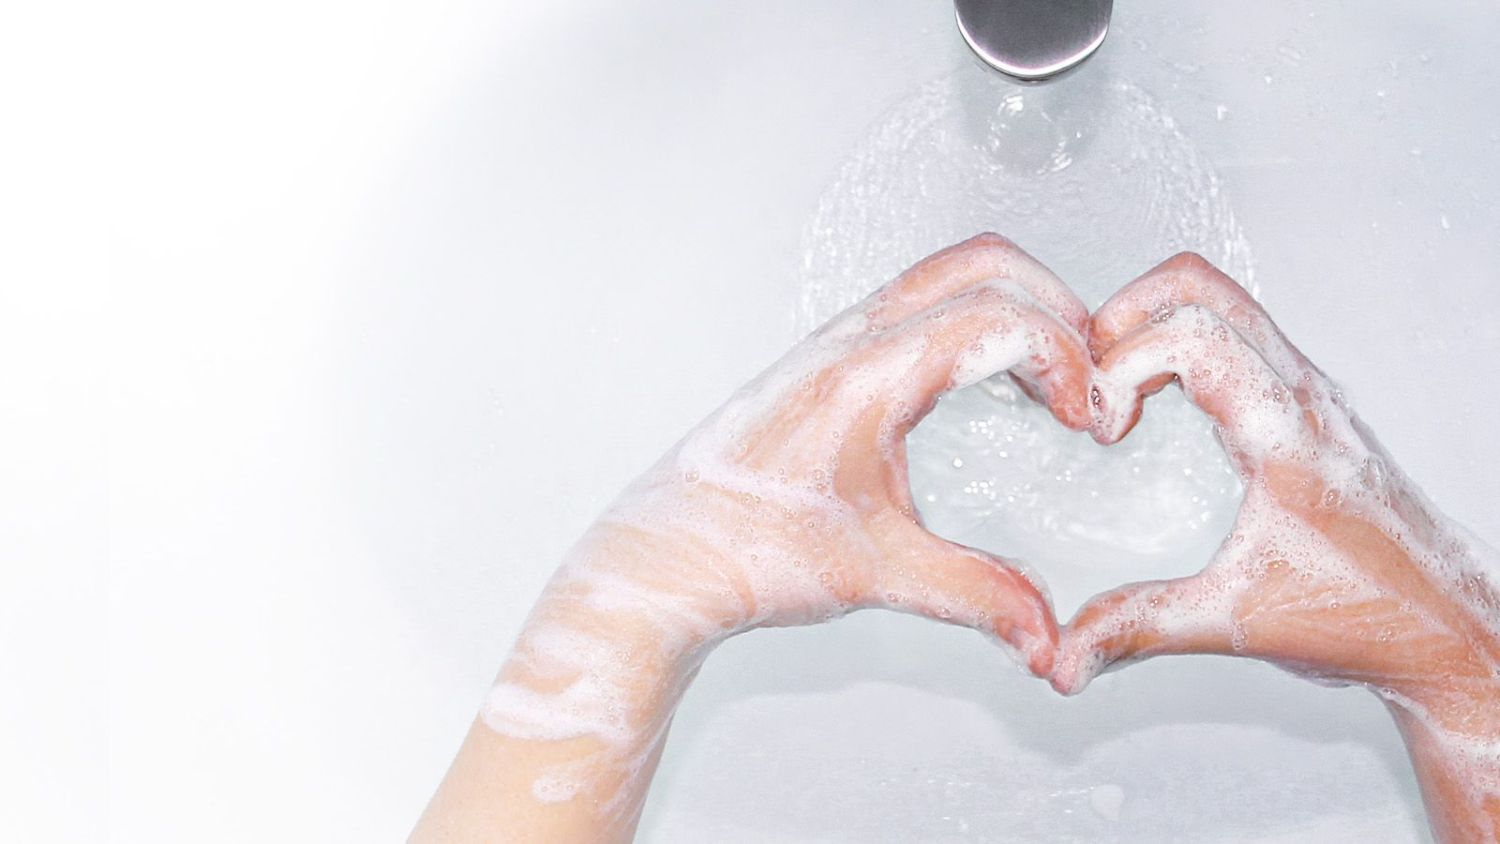 CWS-Keyvisual-Hero-Image-Heart-Handwashing